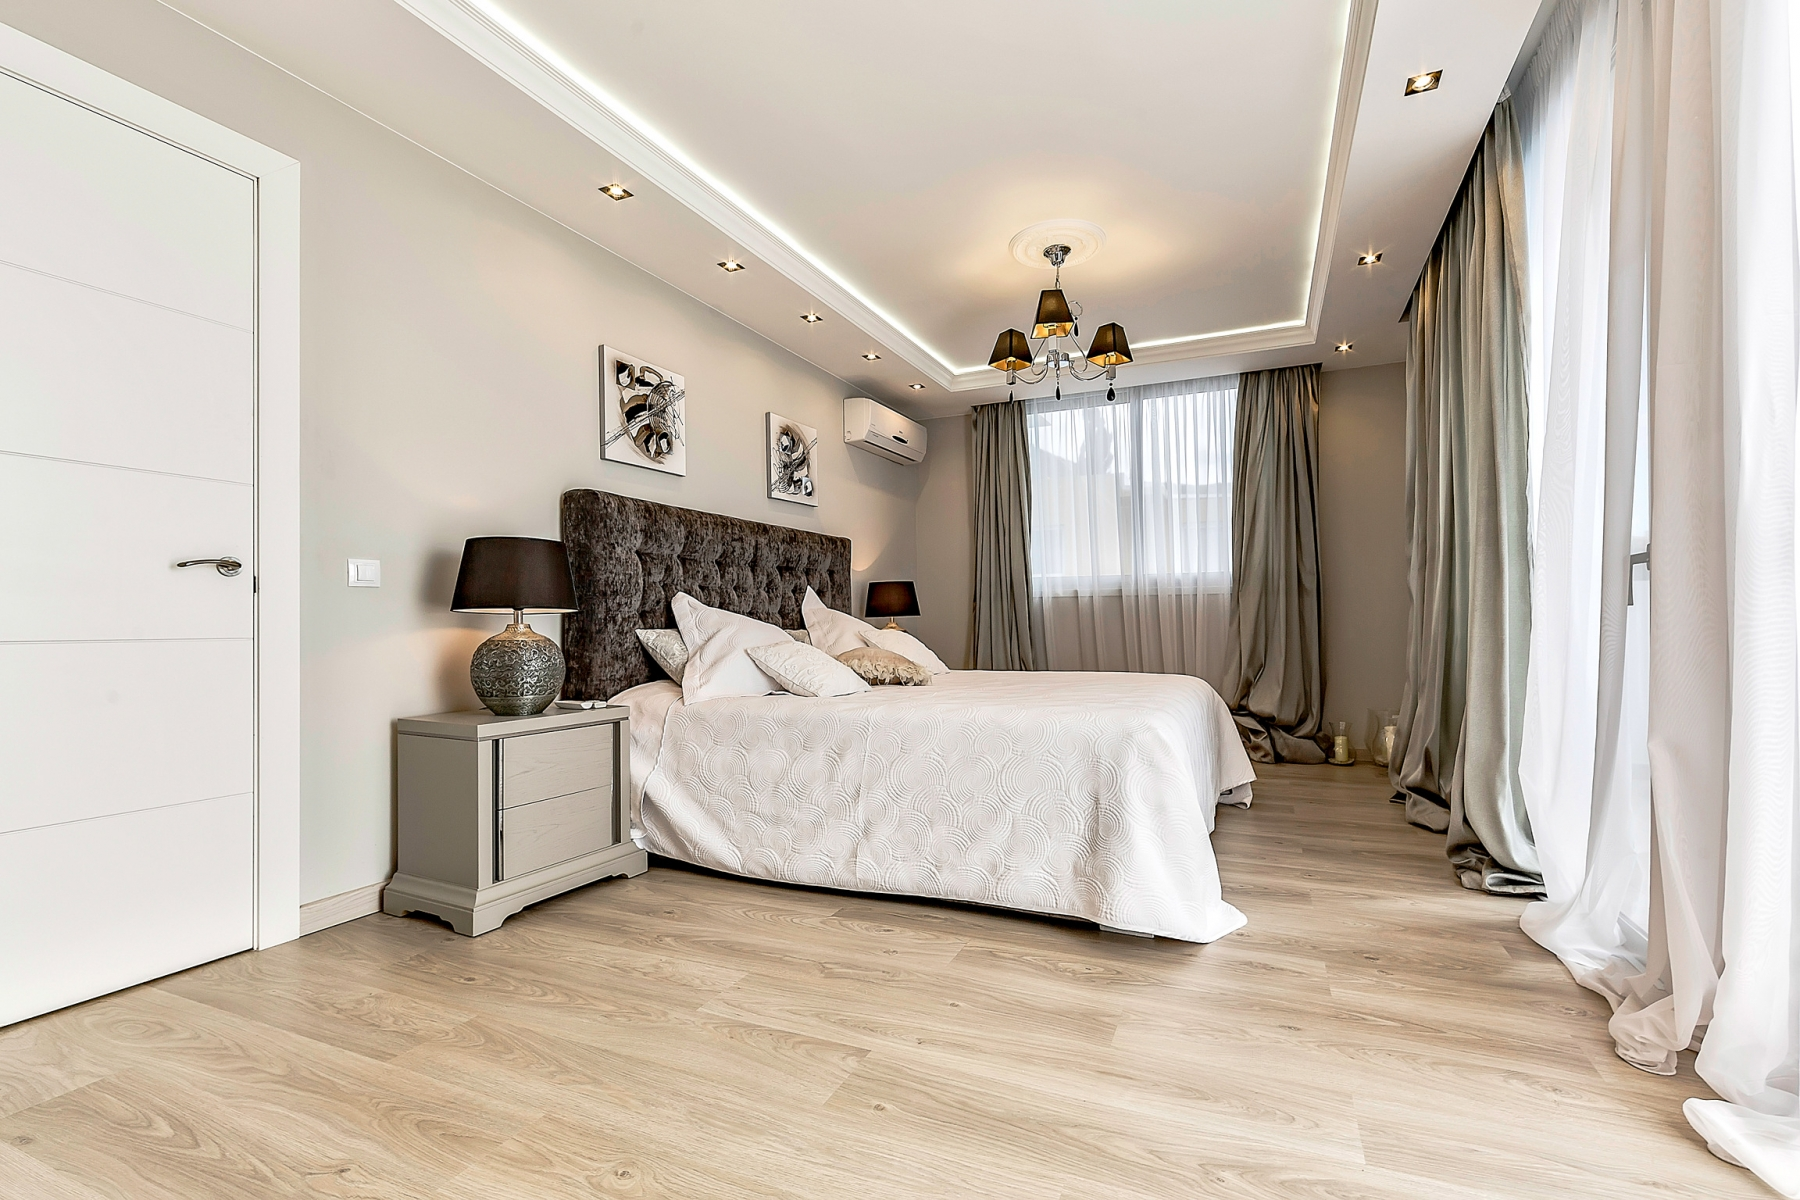 Properties for Sale in Tenerife, Canary Islands, Spain   SylkWayStar Real Estate. Luxury villa in the fashionable area of the south of the island of Tenerife – Madroñal.. Image-22758